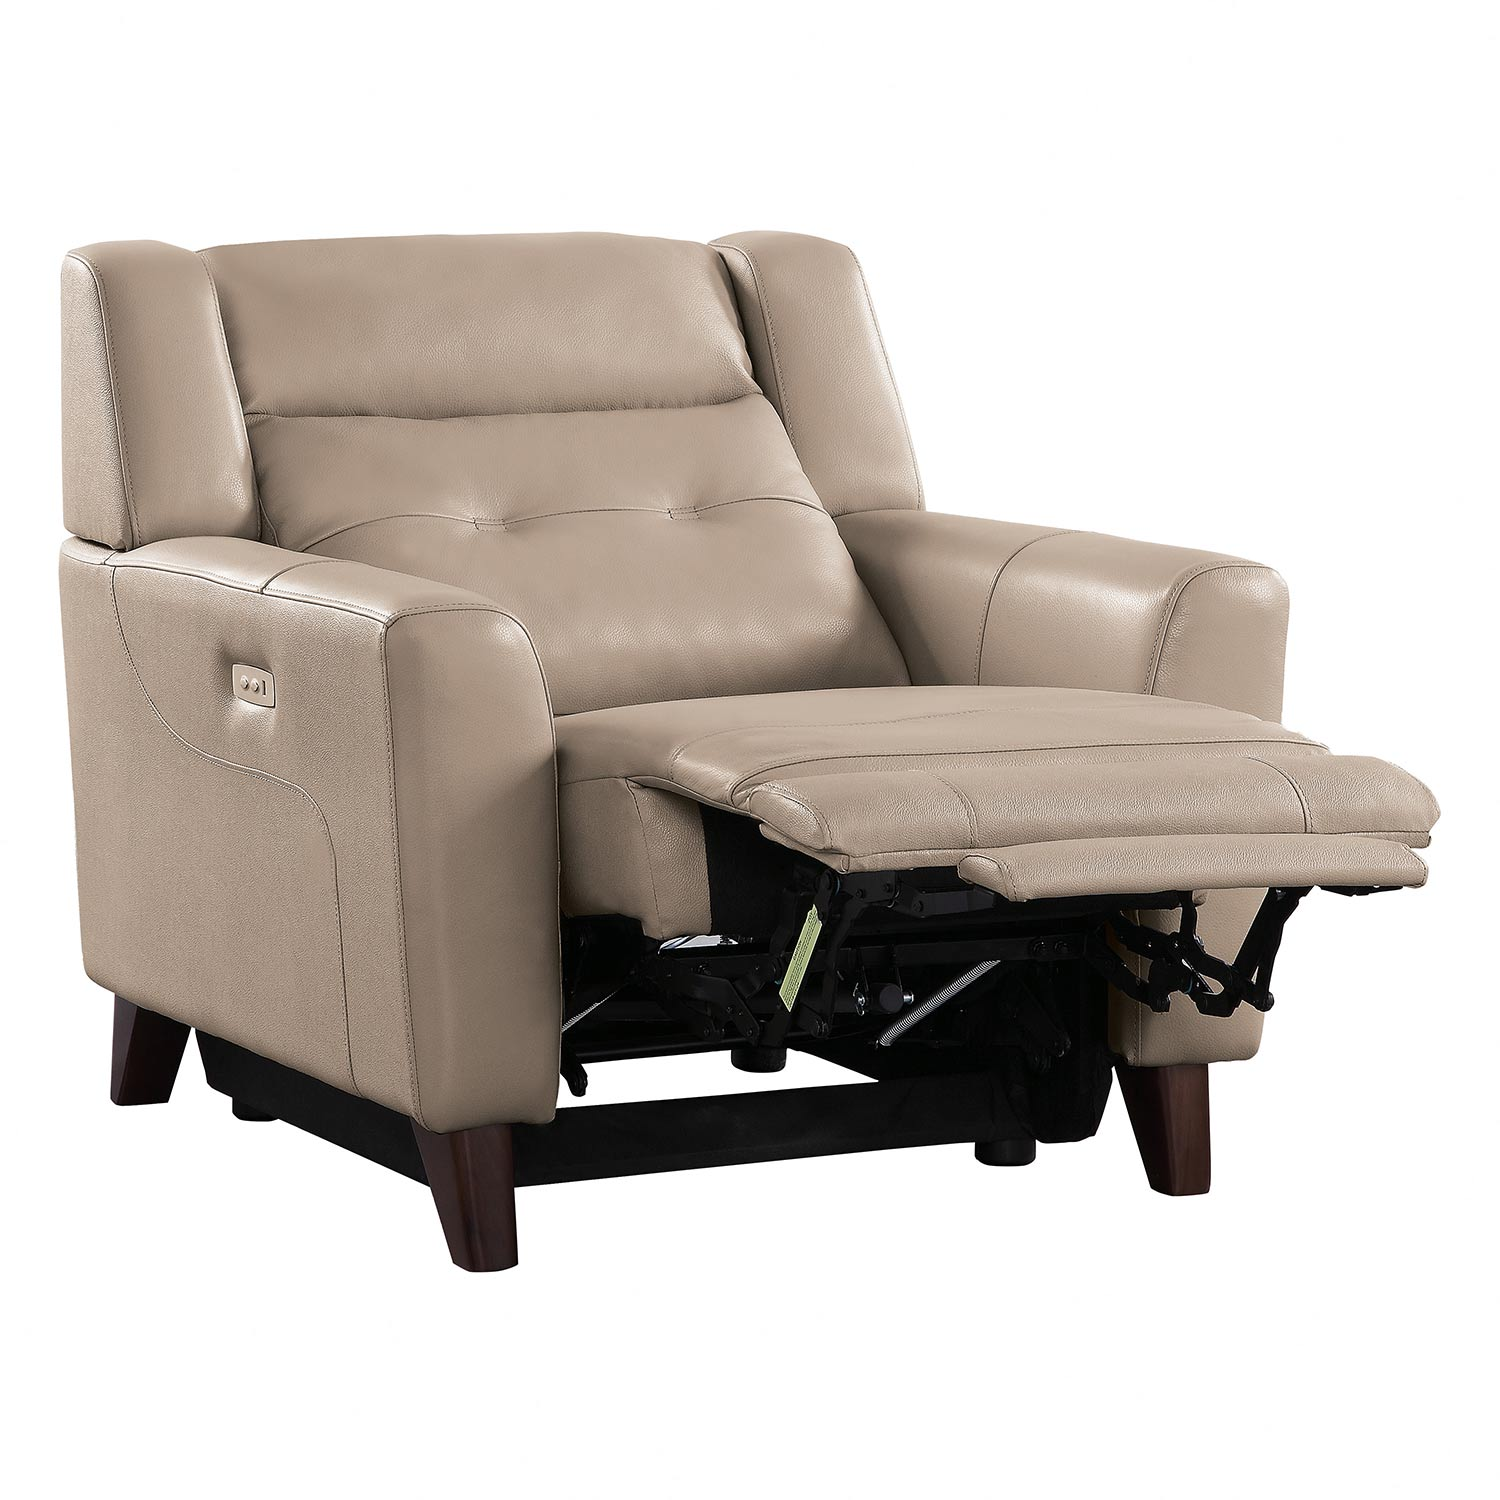 Homelegance Wystan Power Reclining Chair - Beige